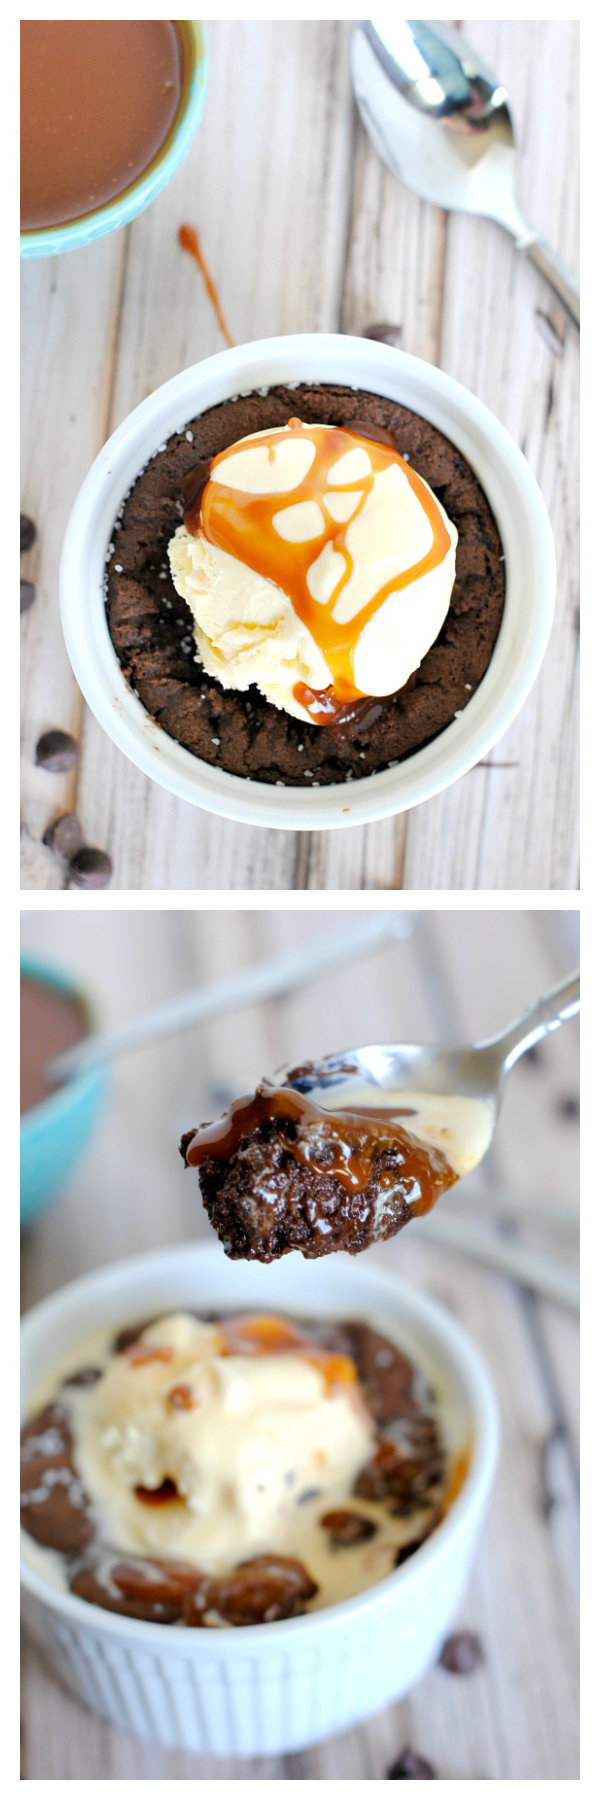 Chocolate Salted Caramel Pizookie Recipe-Gooey, Decadent and Amazing!